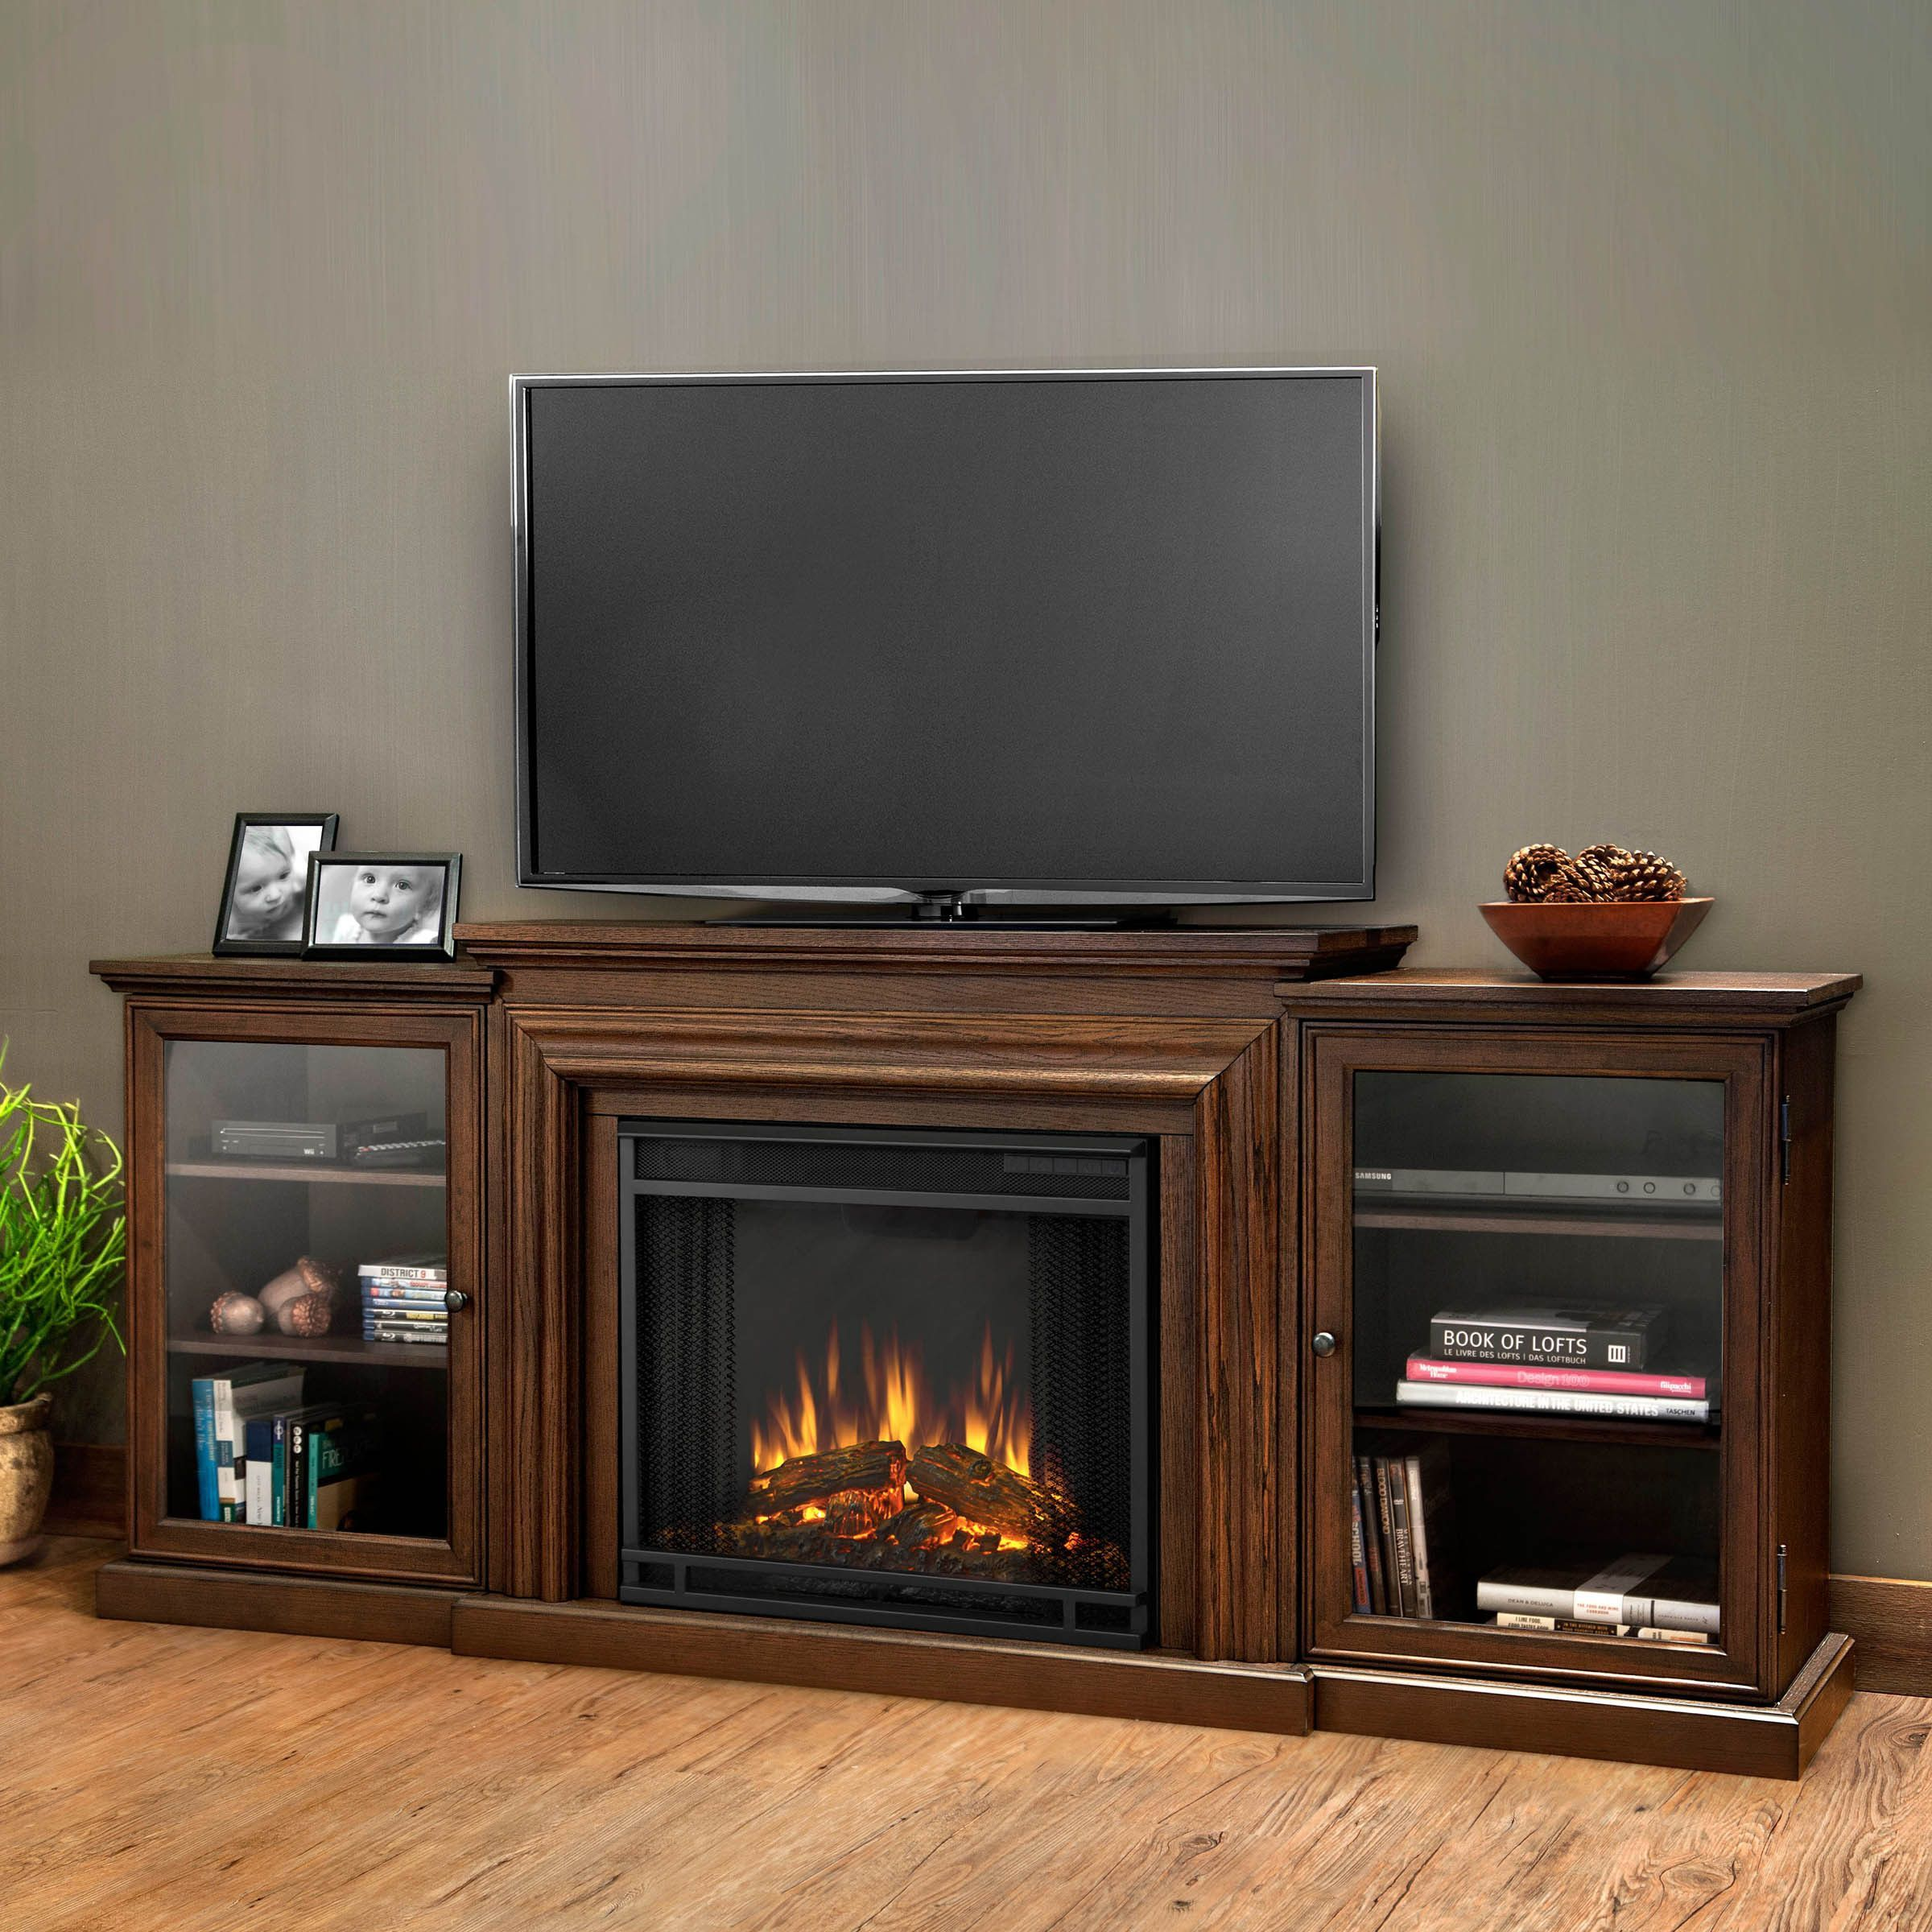 sit and enjoy your favorite movie by the warmth of the fire with